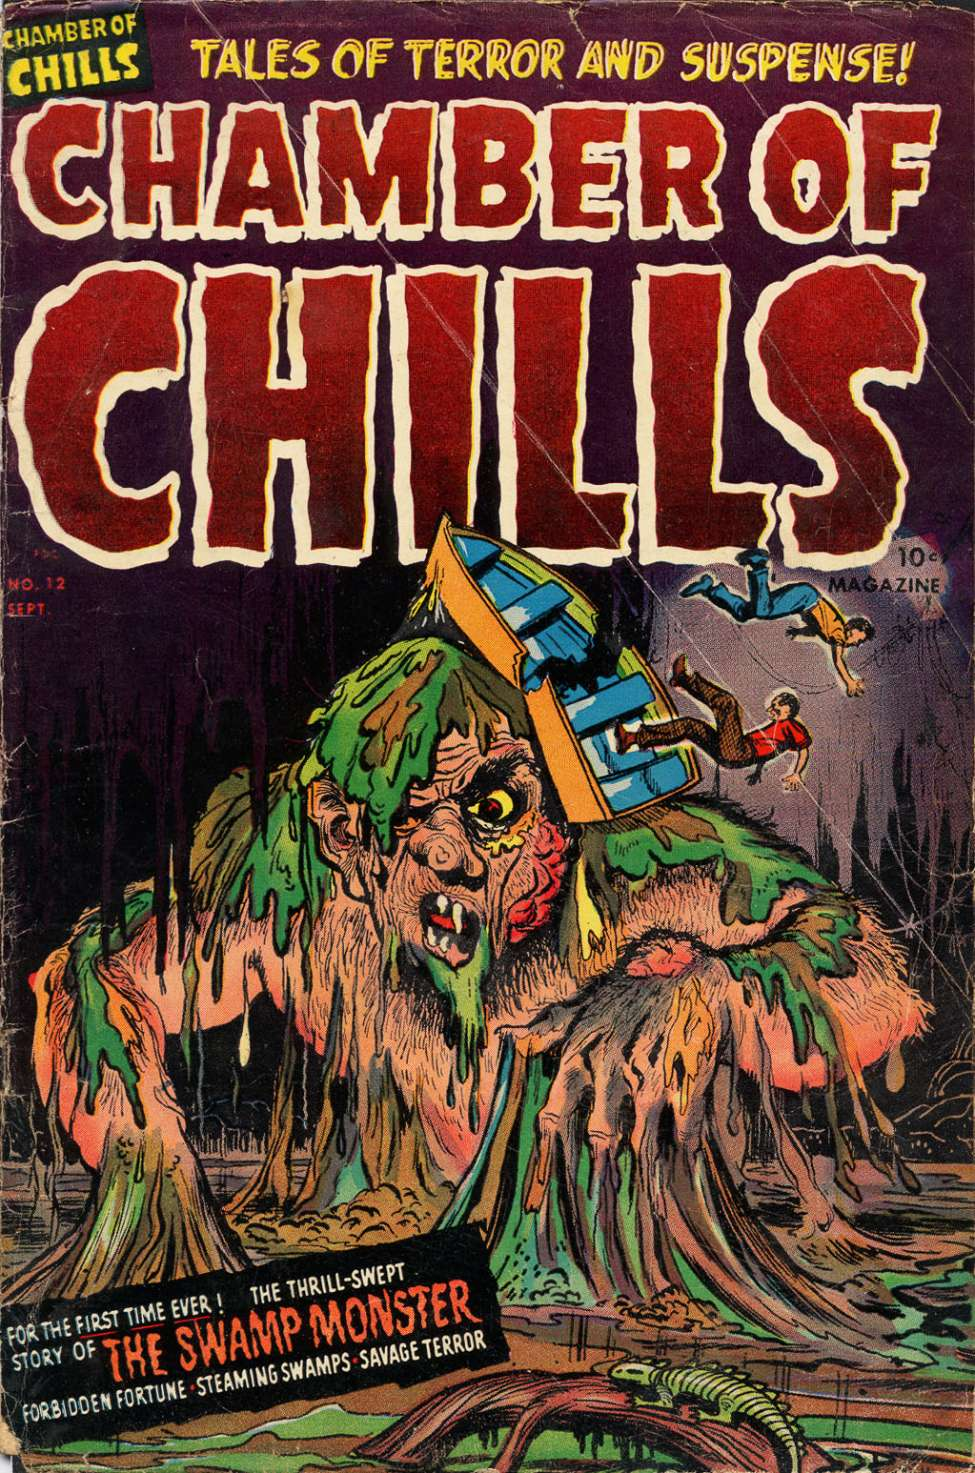 Comic Book Cover For Chamber of Chills Magazine #12